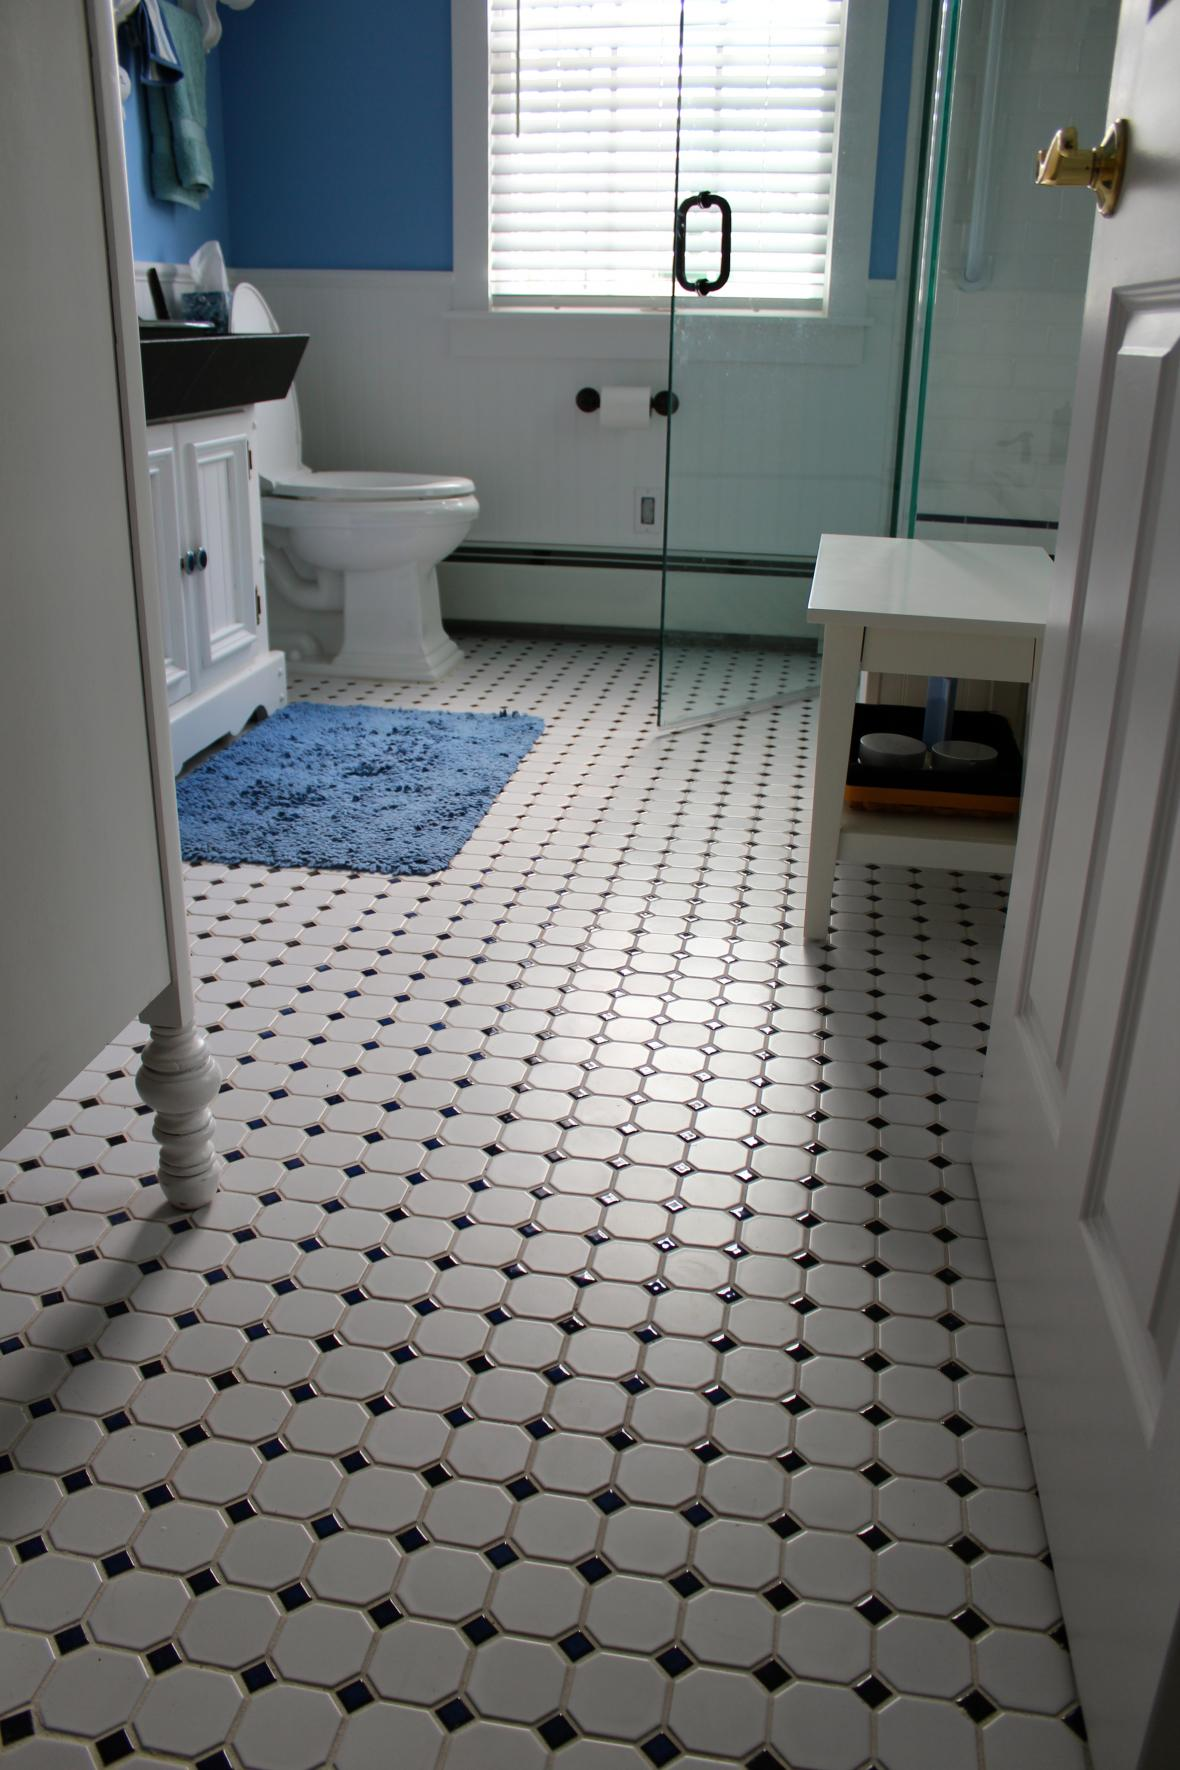 30 great pictures and ideas of fashioned bathroom tile 23174